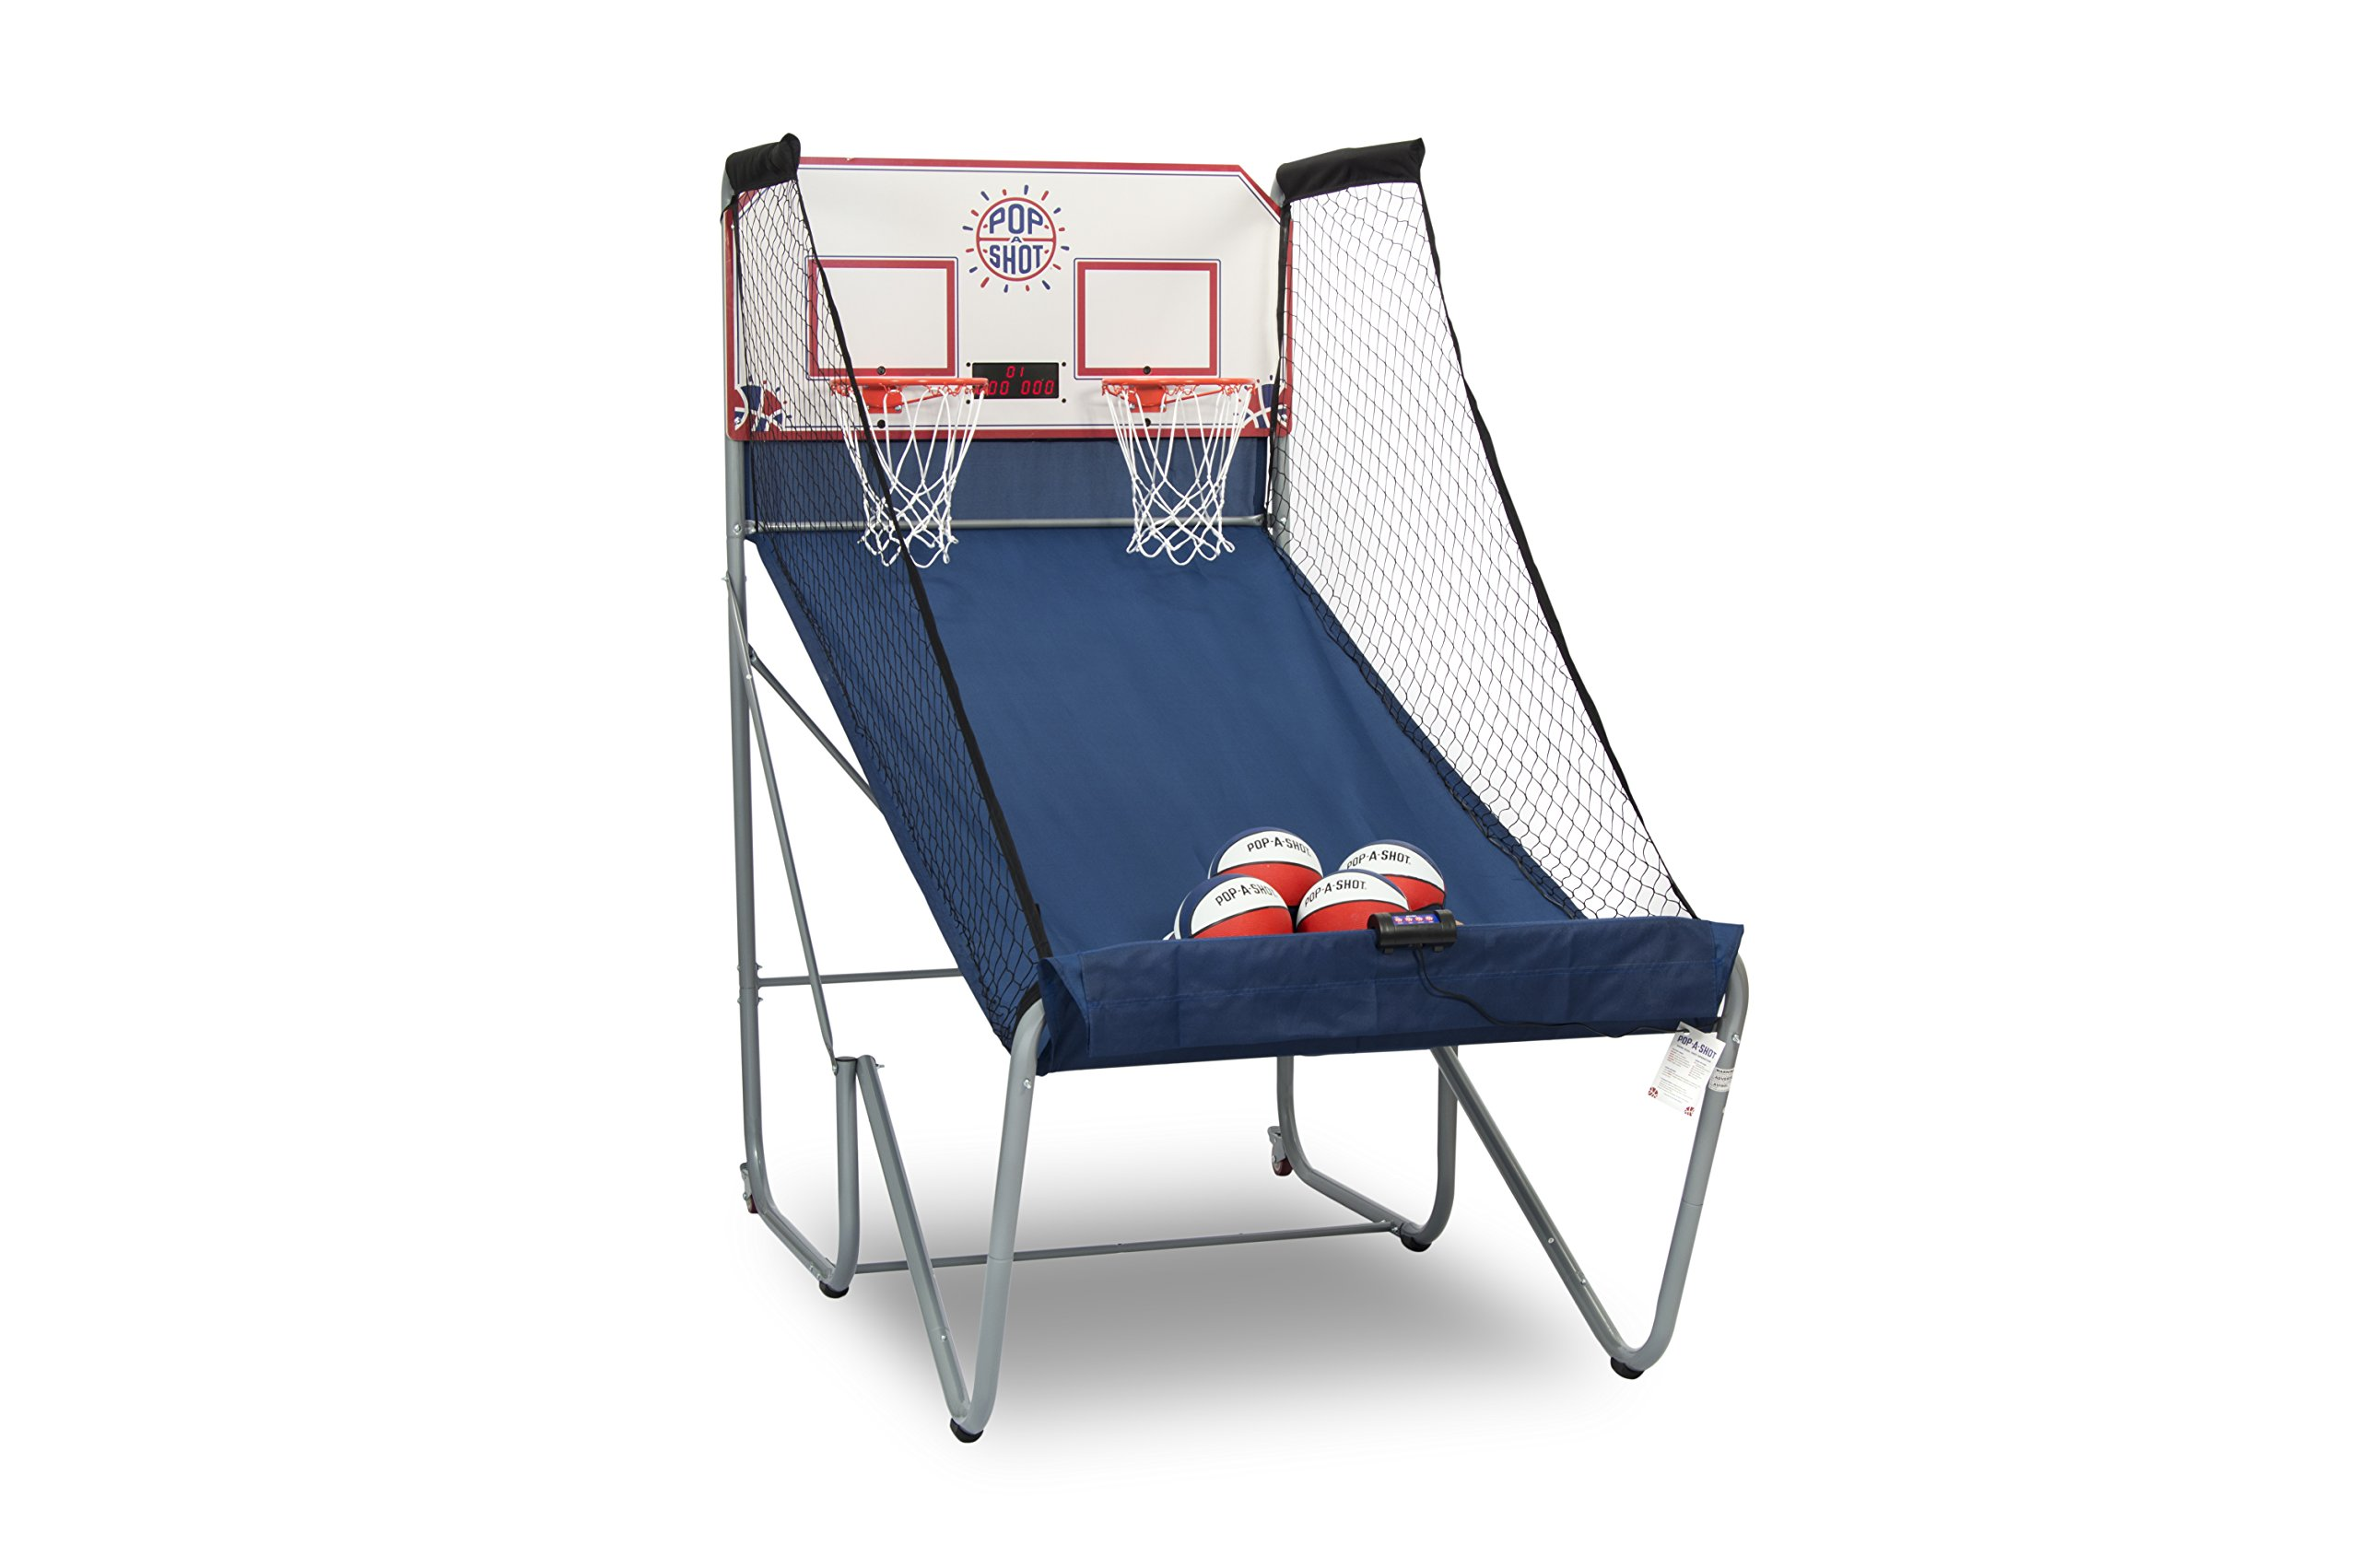 Pop-A-Shot New Official Home Dual Shot Basketball Arcade Game - 16 Individual Games - Durable Construction - Near 100% Scoring Accuracy - Multiple Height Settings - Large LED Scoring System by Pop-A-Shot